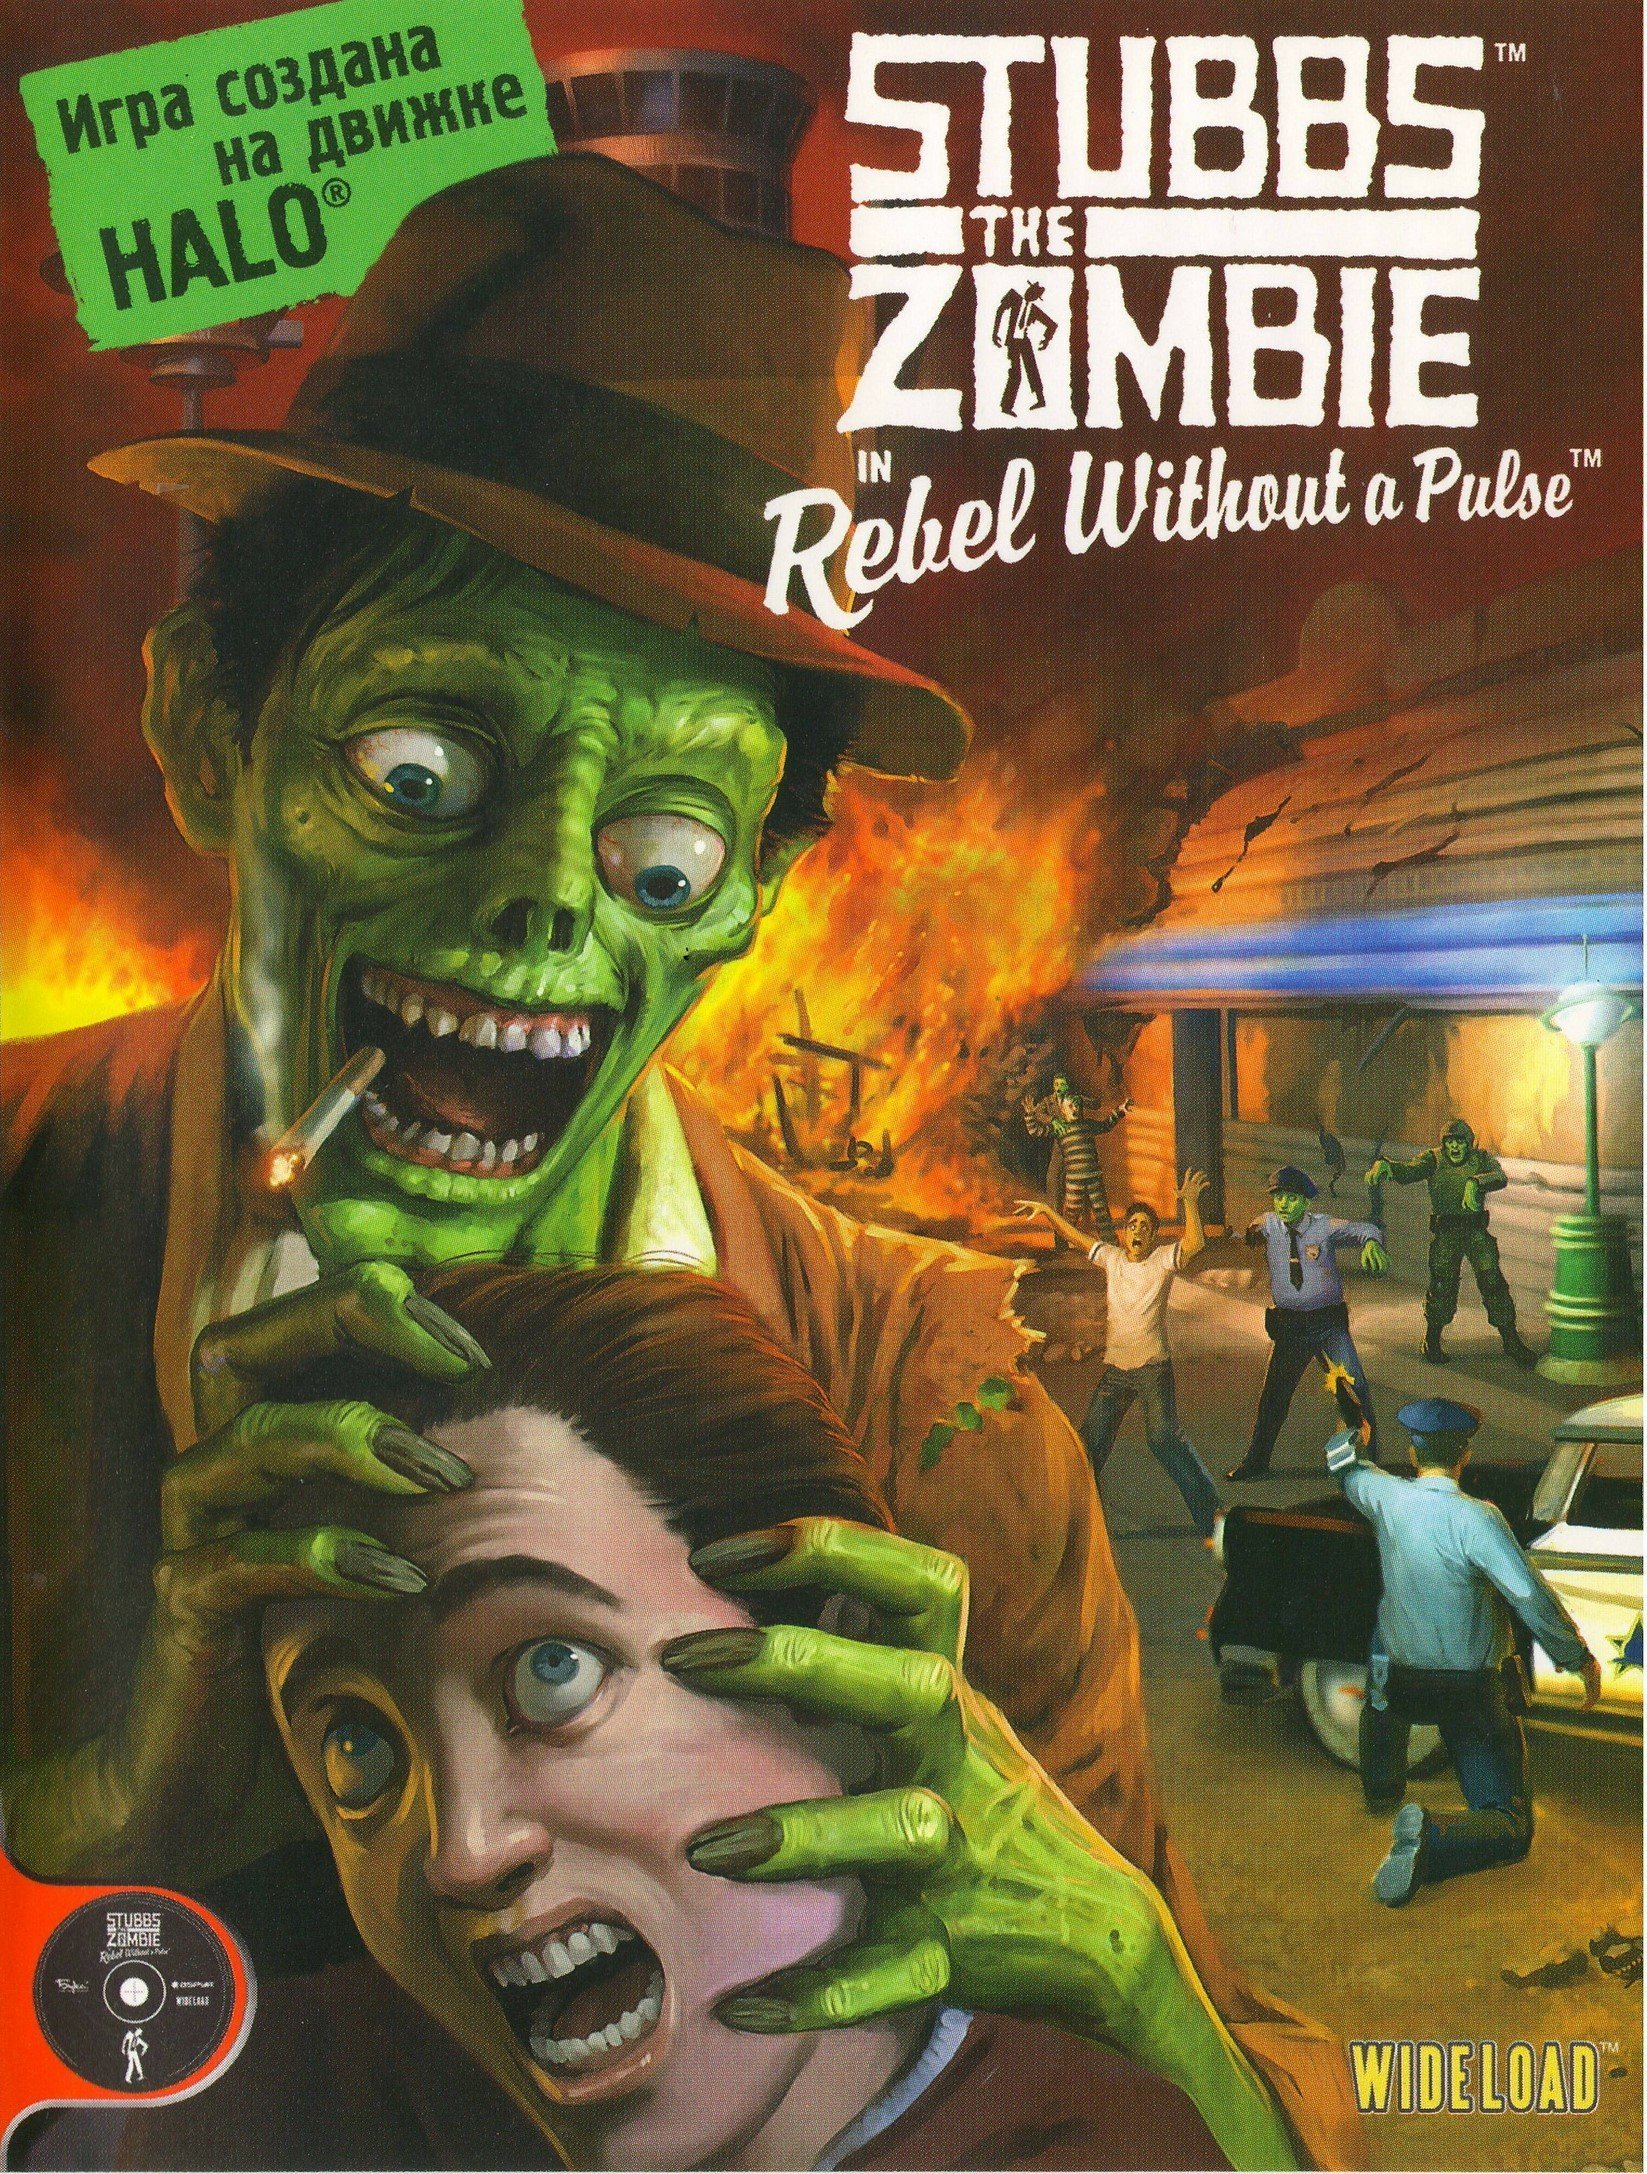 Stubbs the Zombie in Rebel Without a Pulse v.1.02 [Бука] (2005) скачать торрент Лицензия